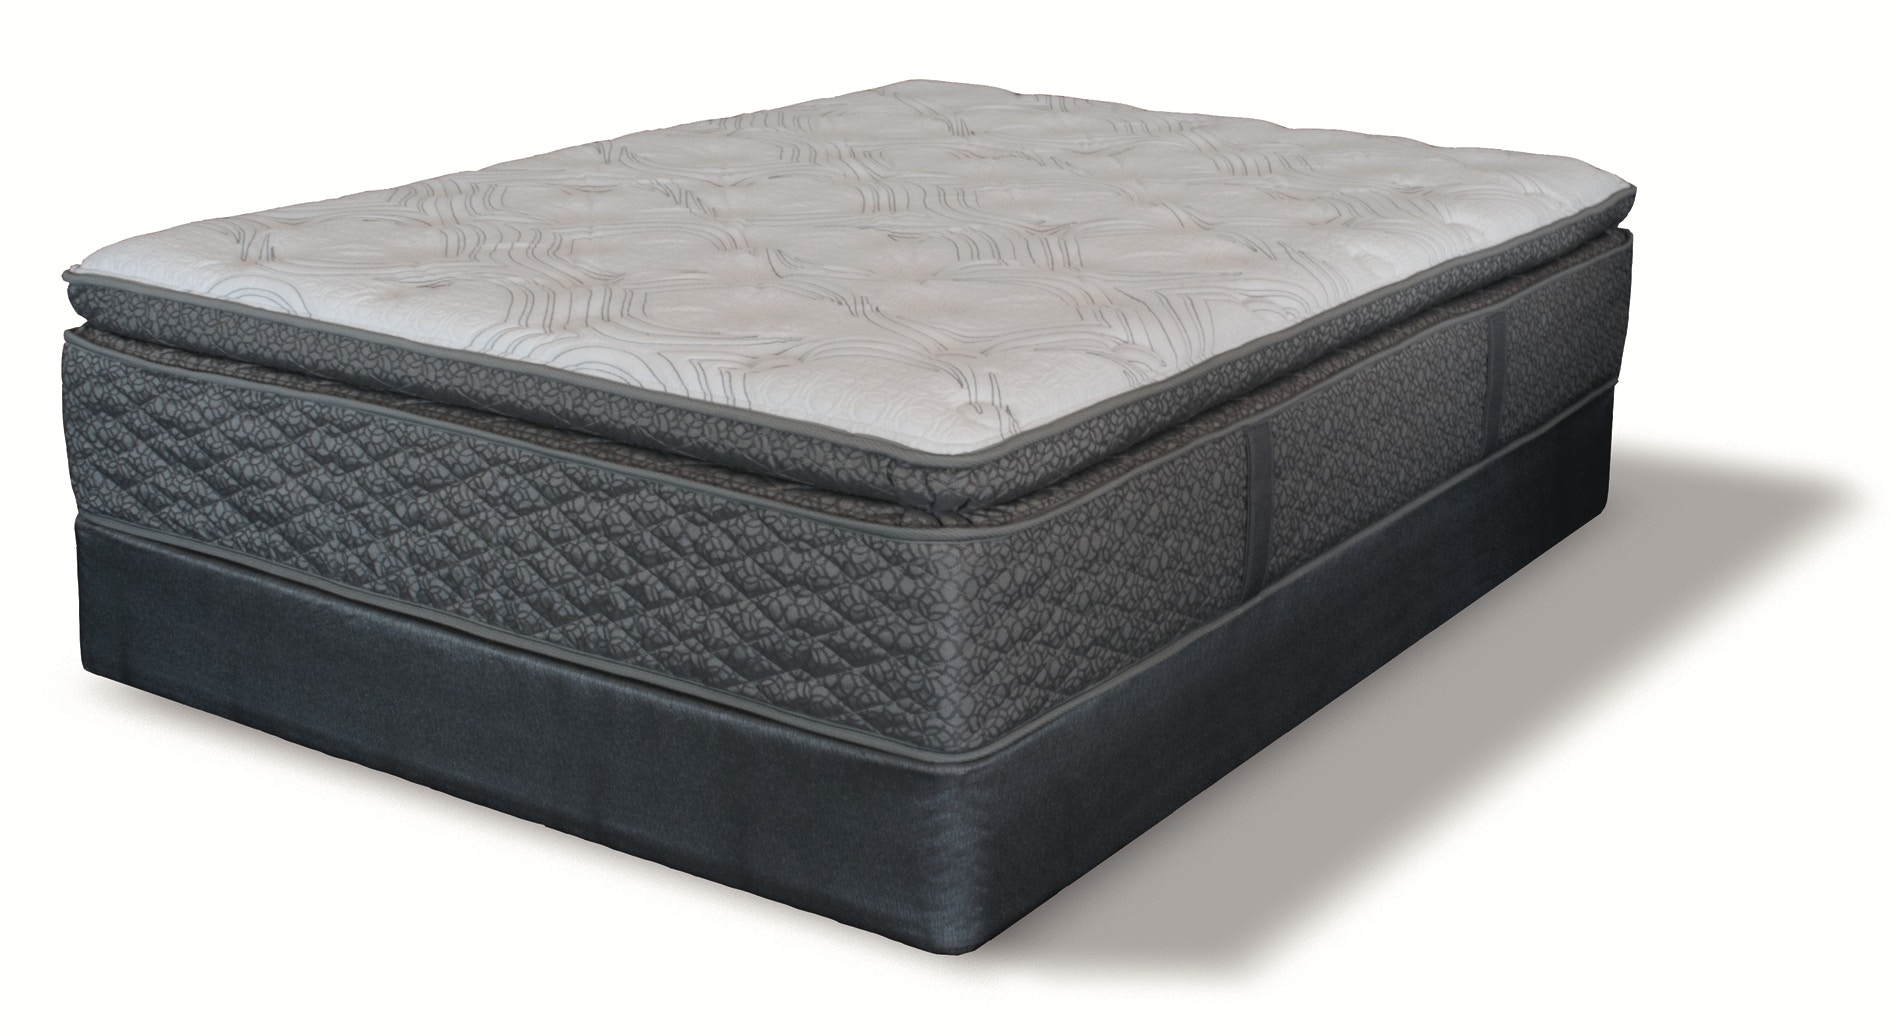 king pillow top mattress. The Symbolism Super Pillow Top Mattress Set - King (635868) Includes And Box Springs. 635868 By